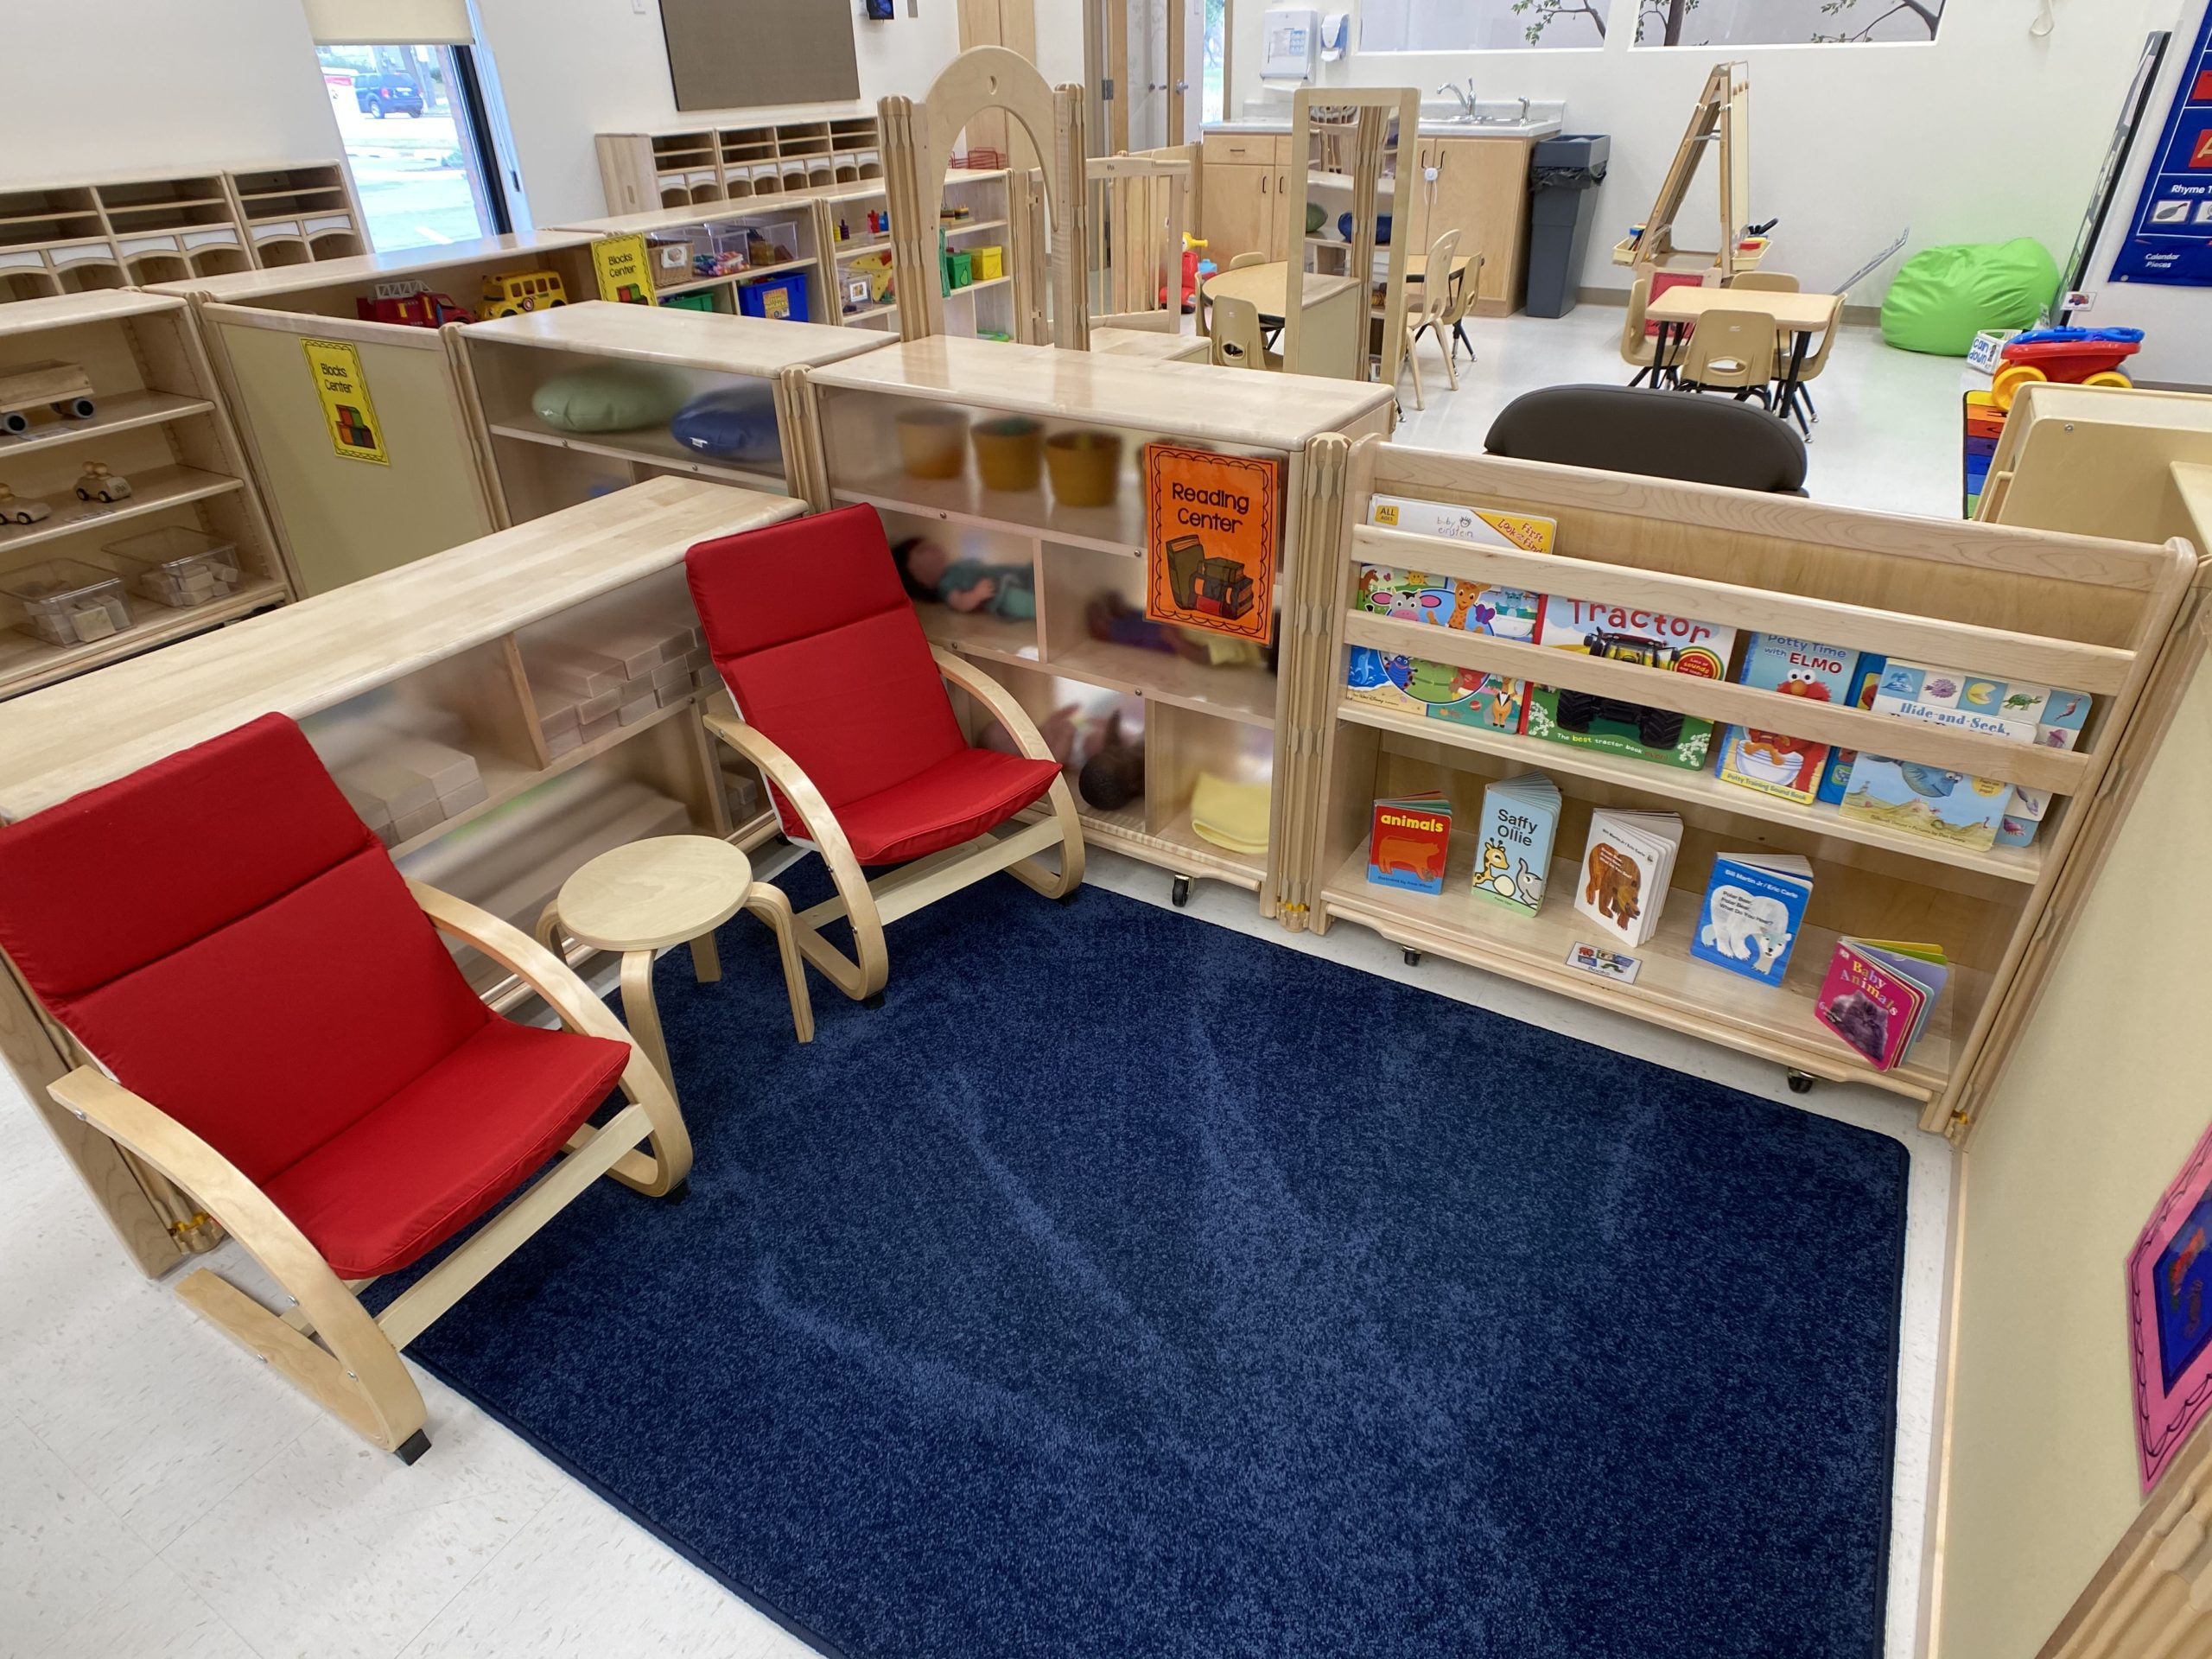 children's learning area - reading area with chairs